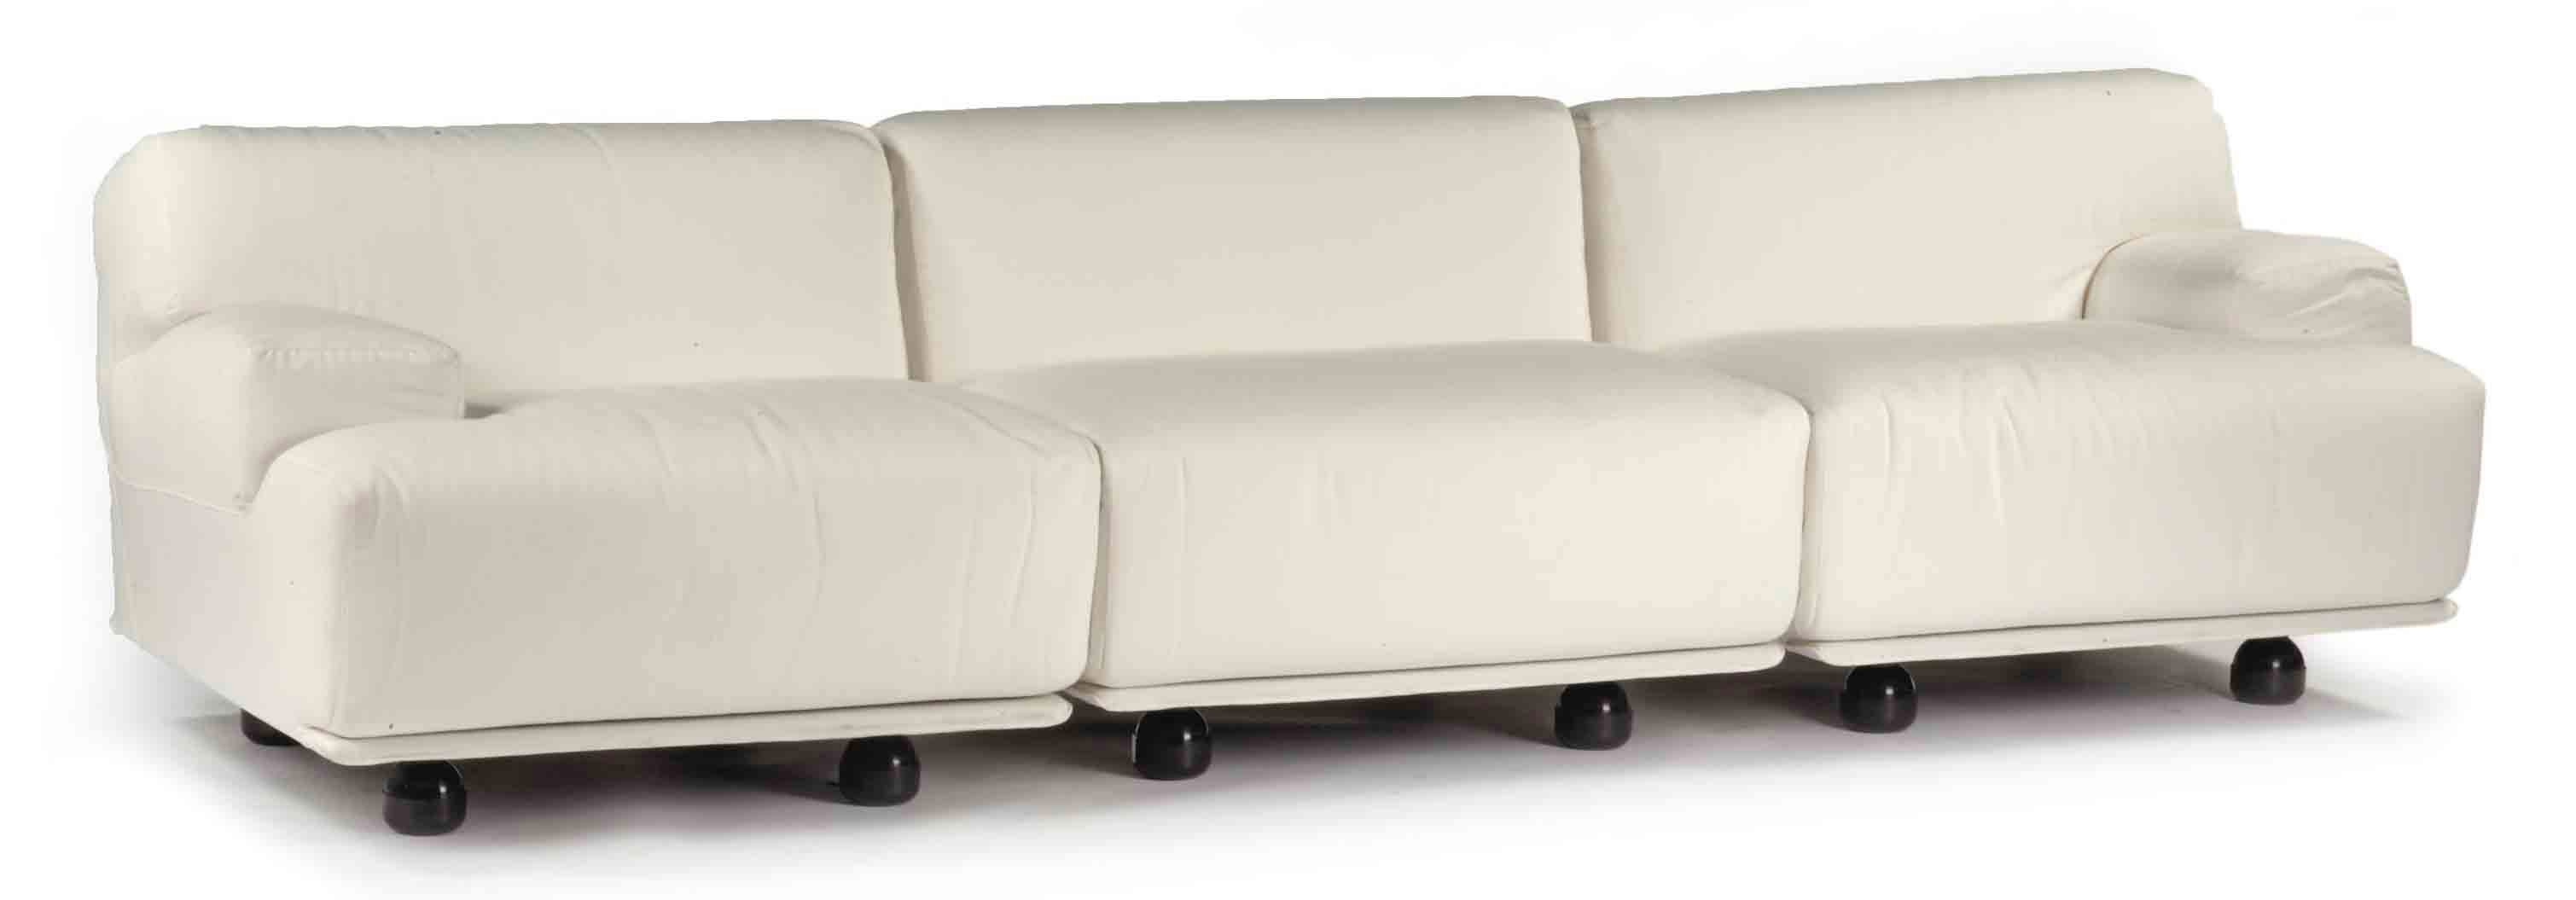 A WHITE COTTON 'FIANDRA' SOFA